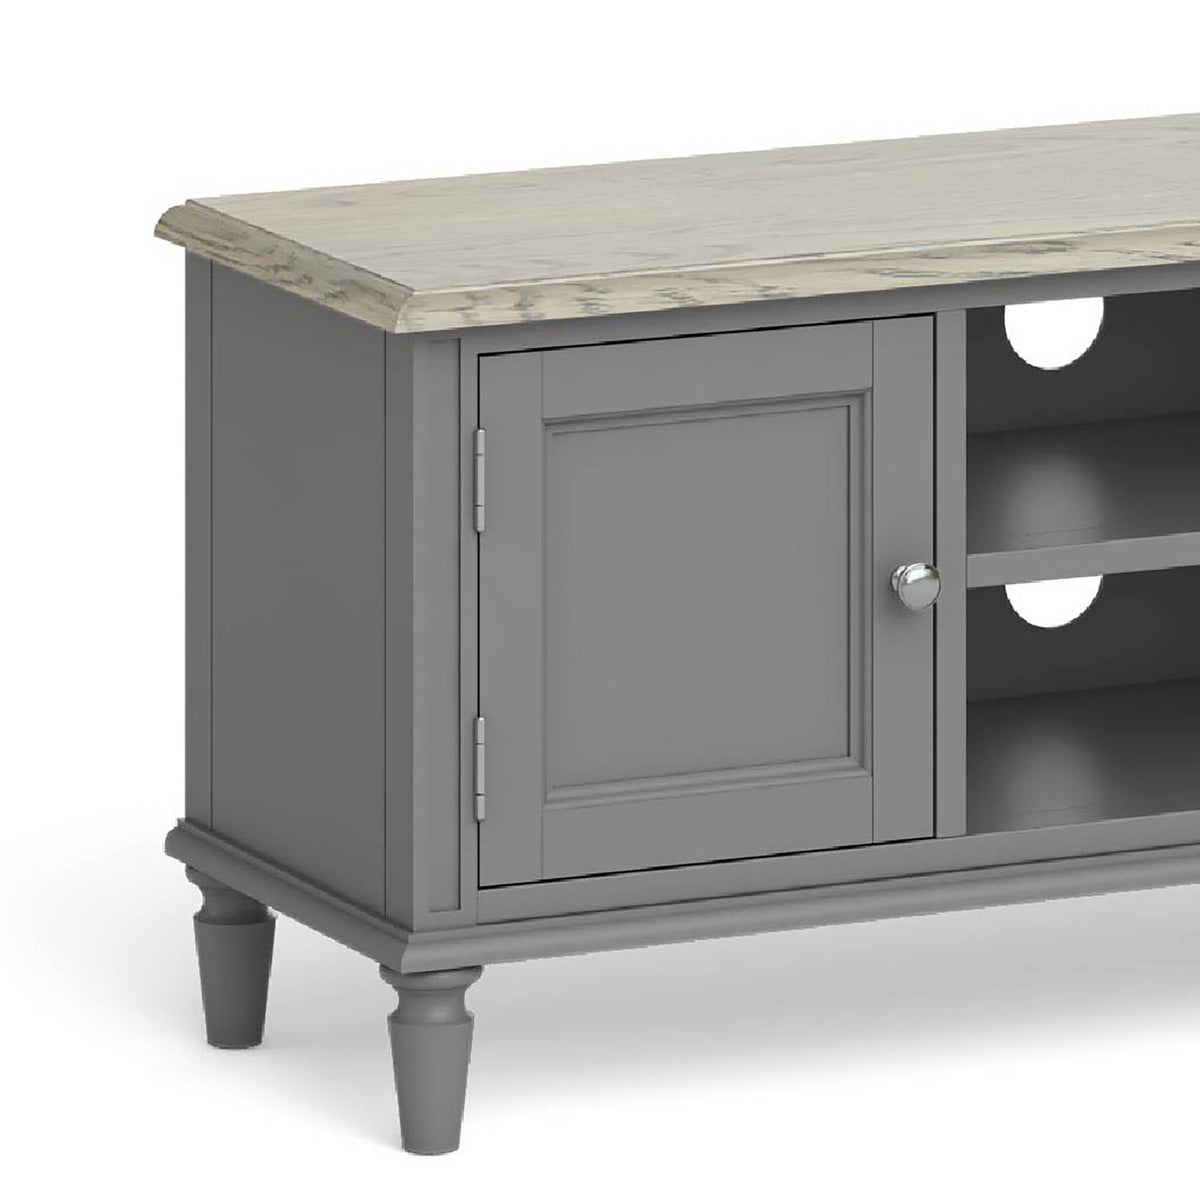 The Mulsanne Grey Large TV Unit - Close Up of Cupboard